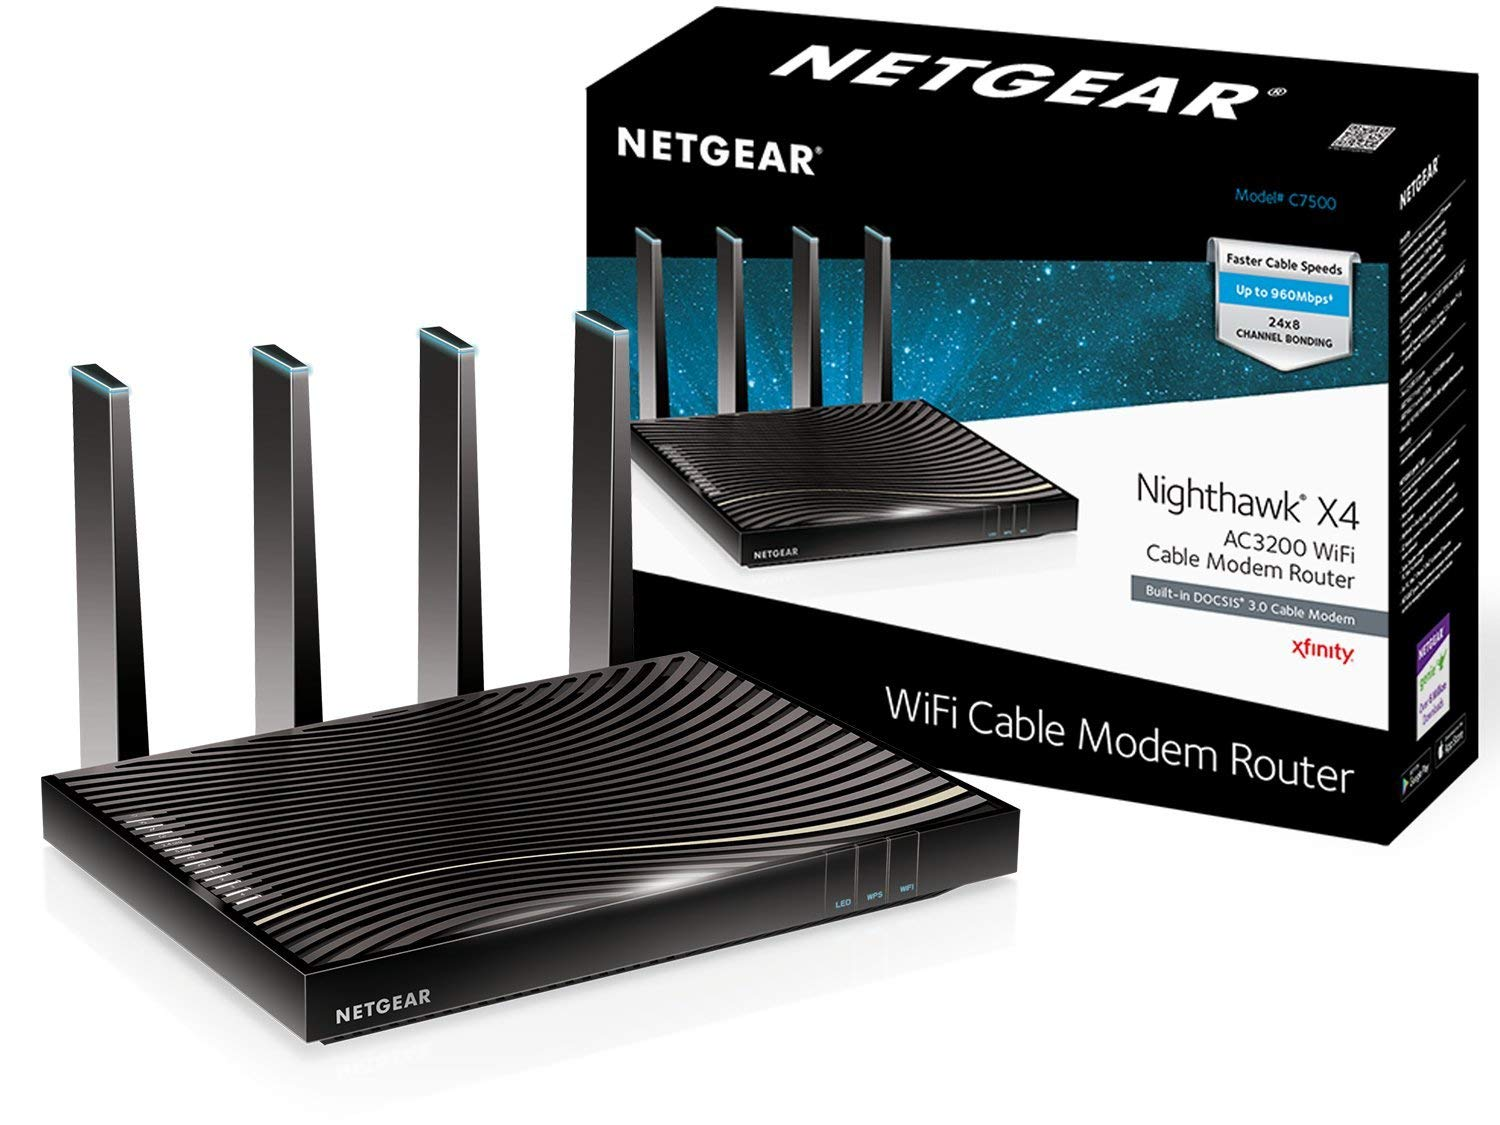 Netgear C7500-100NASNETGEAR Nighthawk X4 (24x8) AC3200 DOCSIS 3.0 Cable Modem WiFi Router Combo   Certified for Xfinity by Comcast, COX, Spectrum & More(C7500) (Renewed)